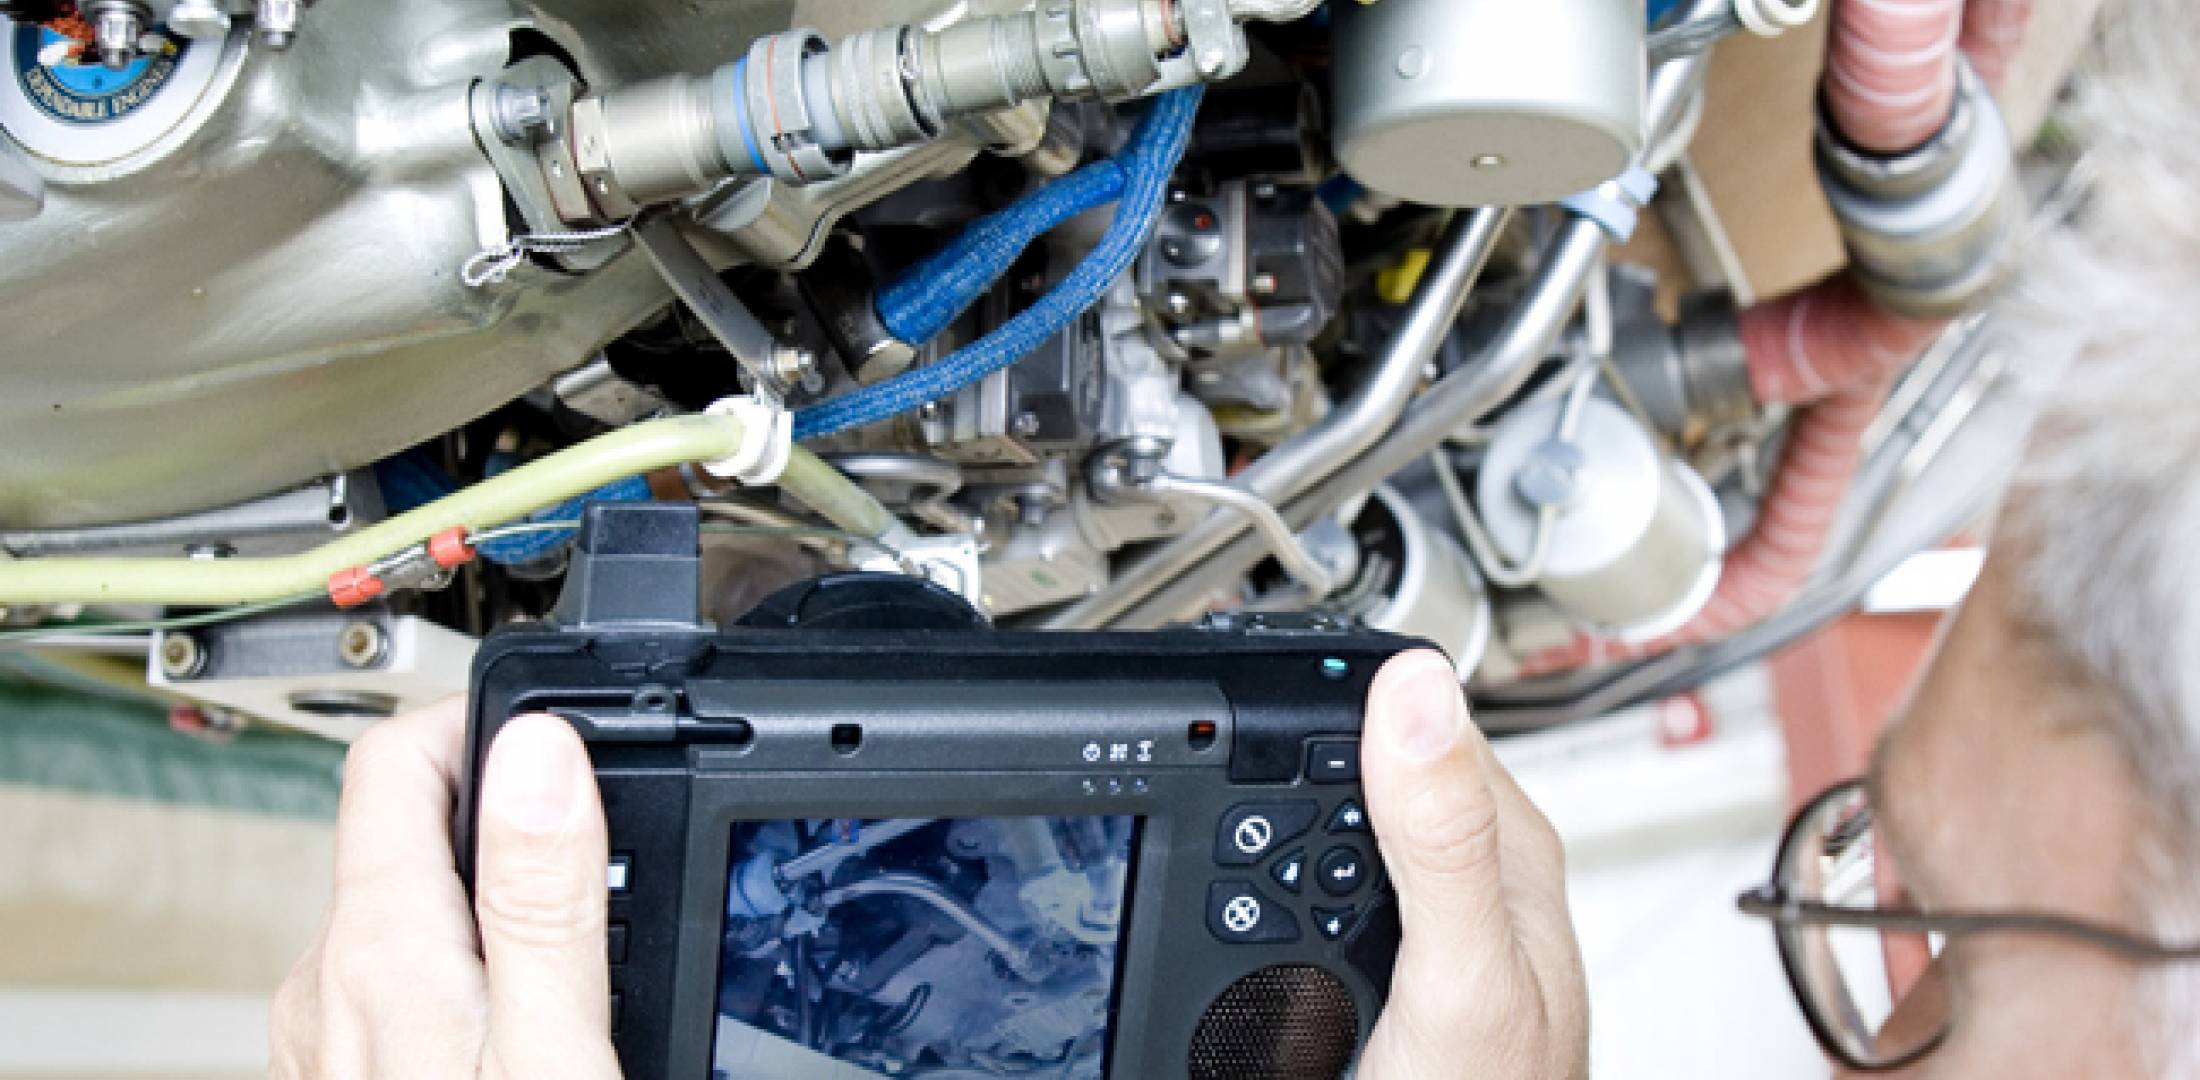 Librestream's Onsight mobile video device lets maintenance experts troubleshoot problems remotely.